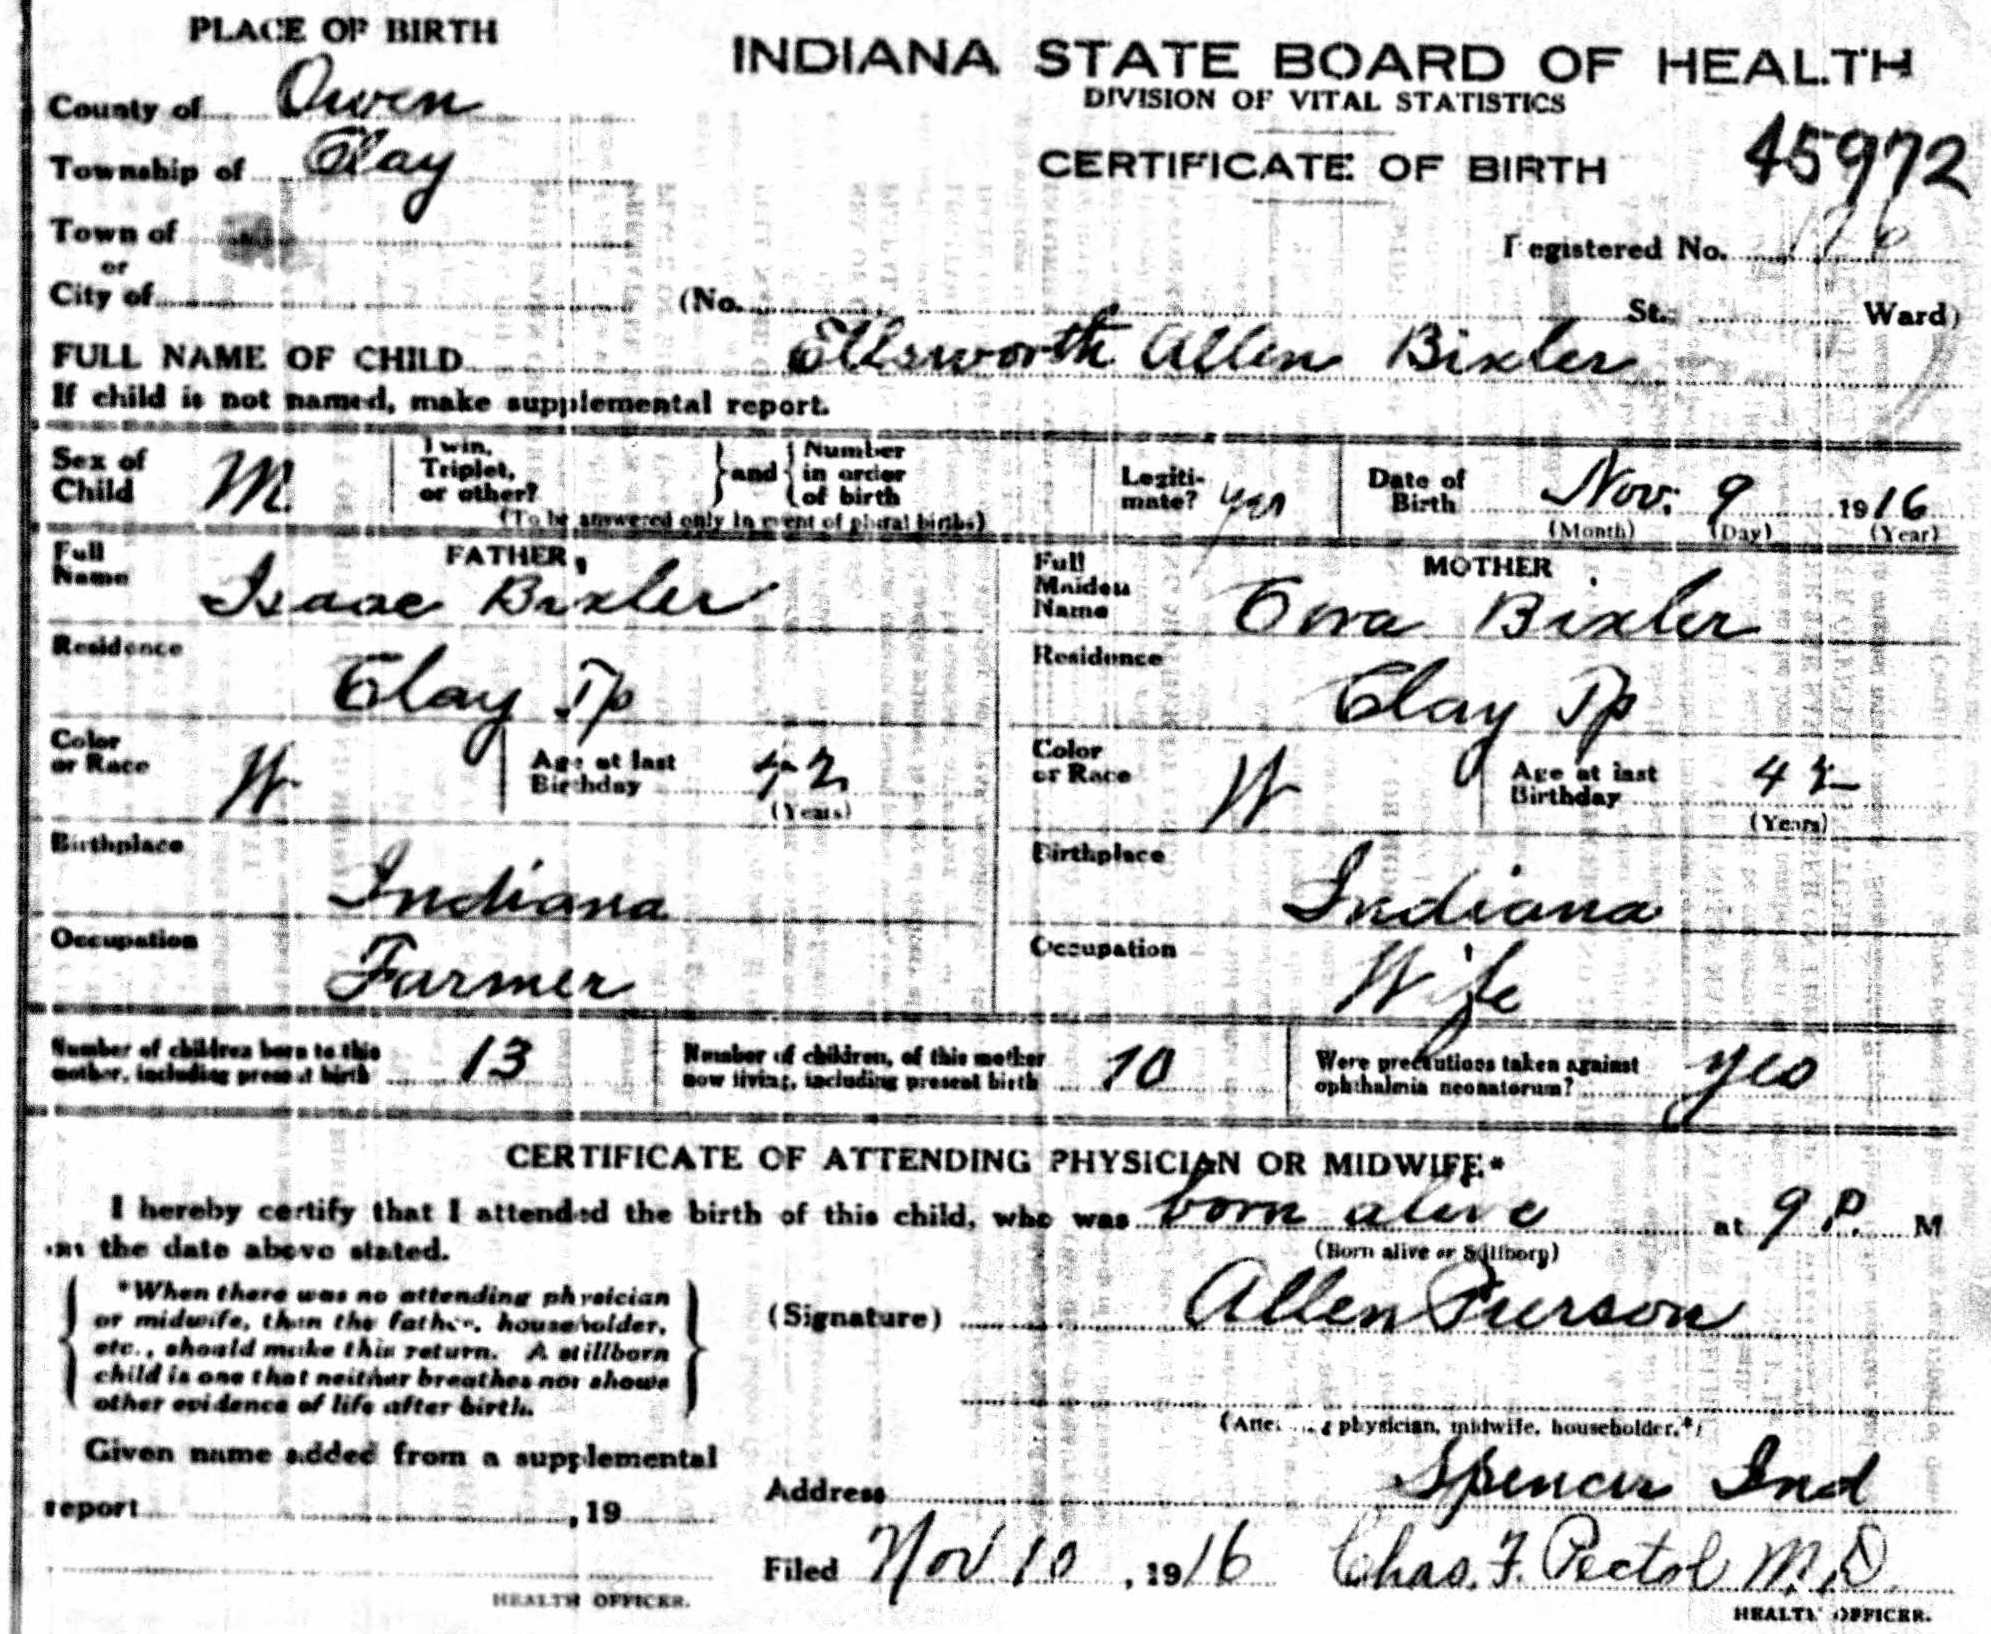 Ellsworth Bixler - birth certificate